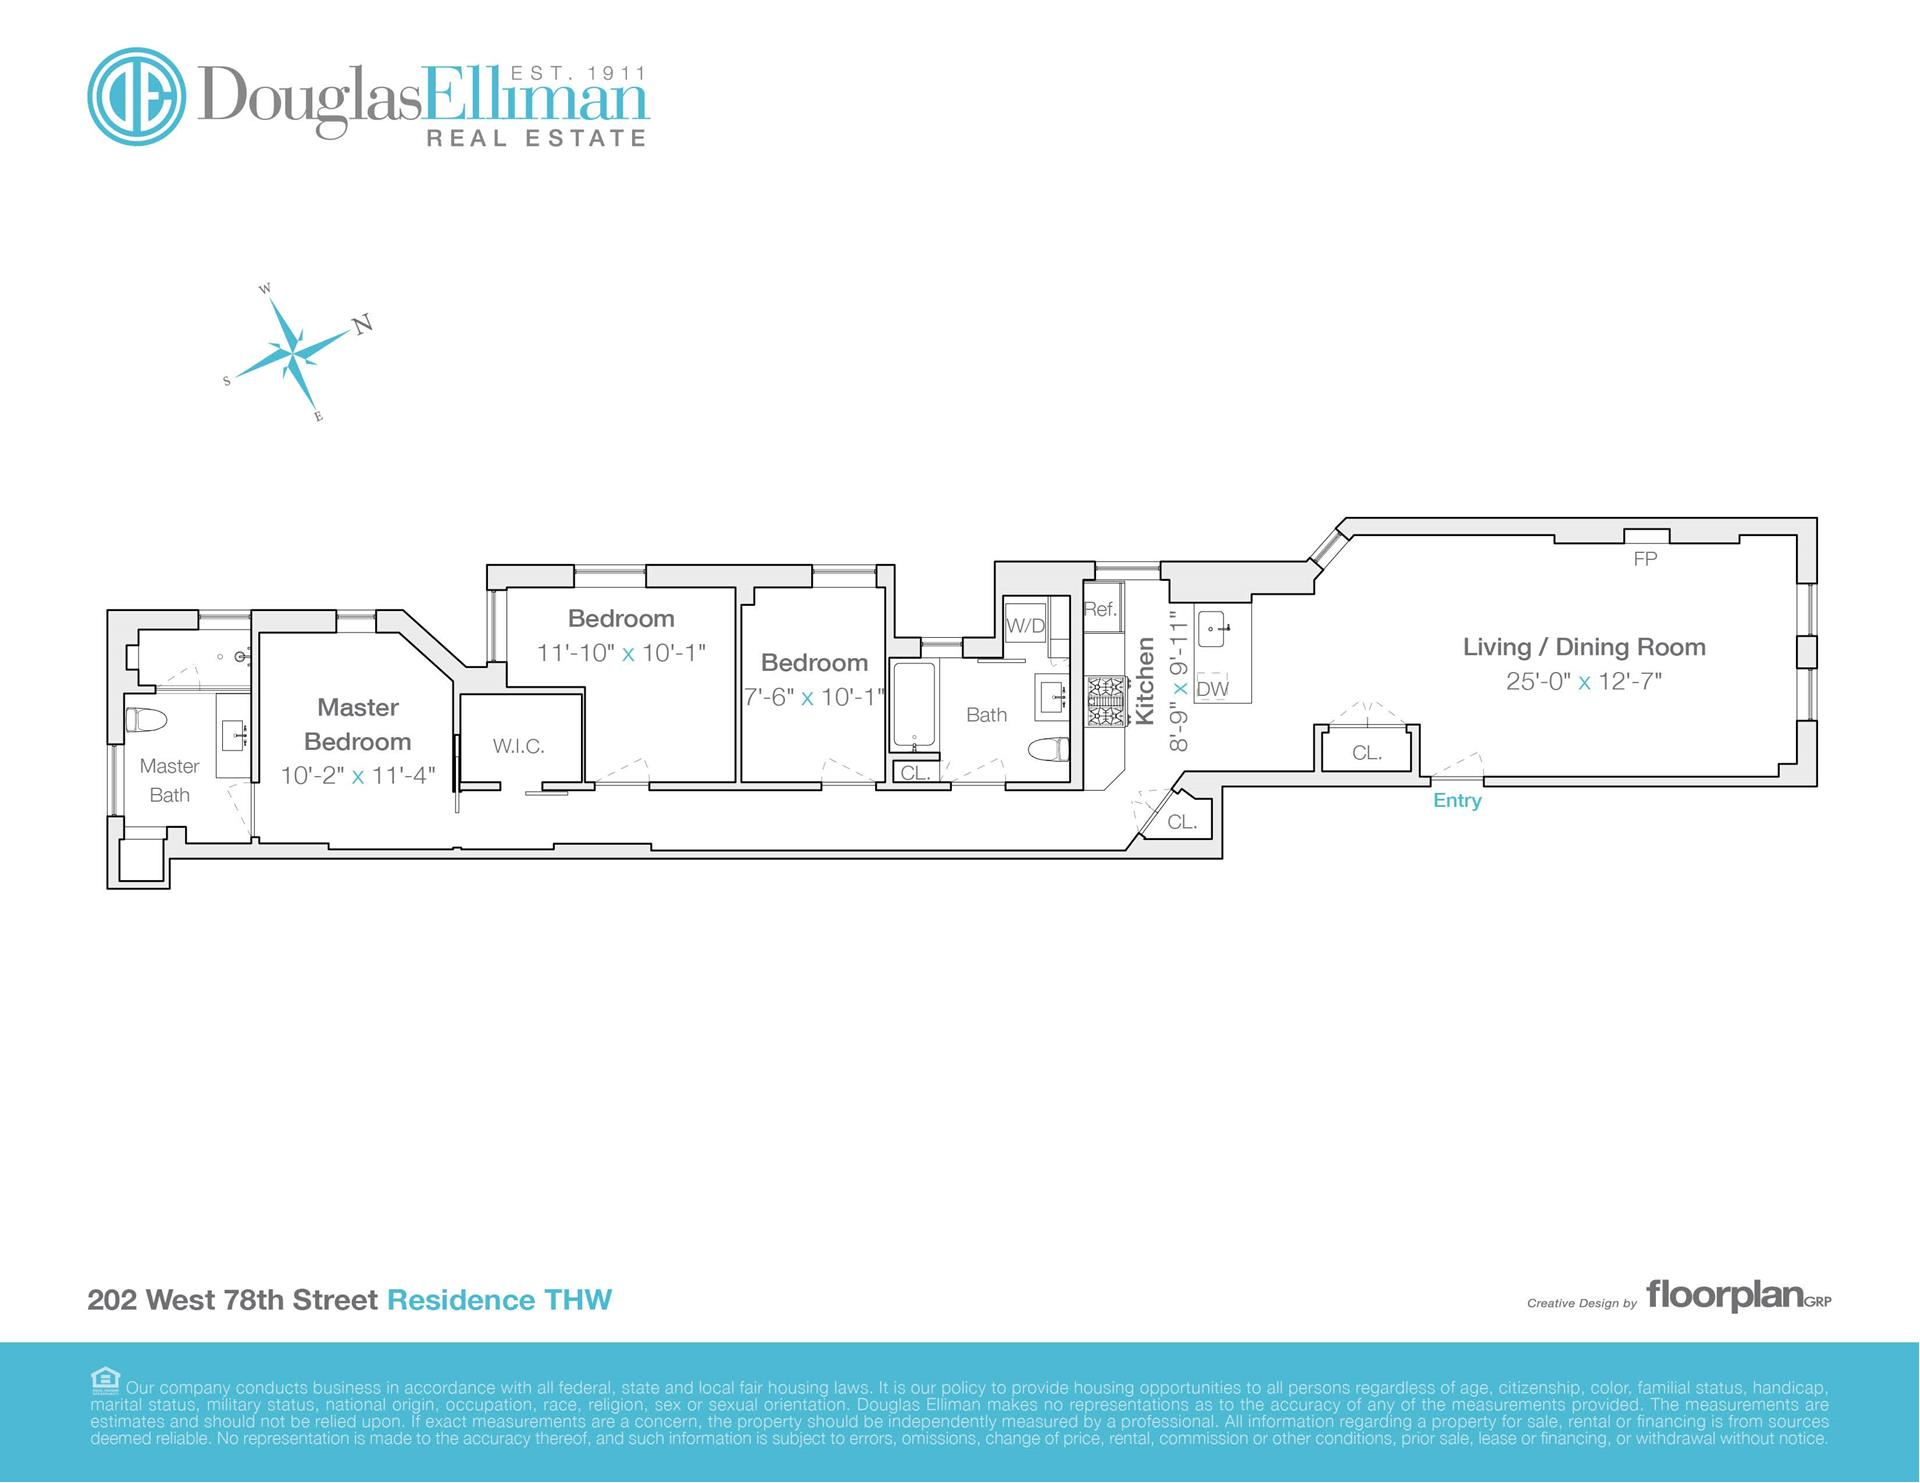 Floor plan of 202 West 78th St, THW - Upper West Side, New York